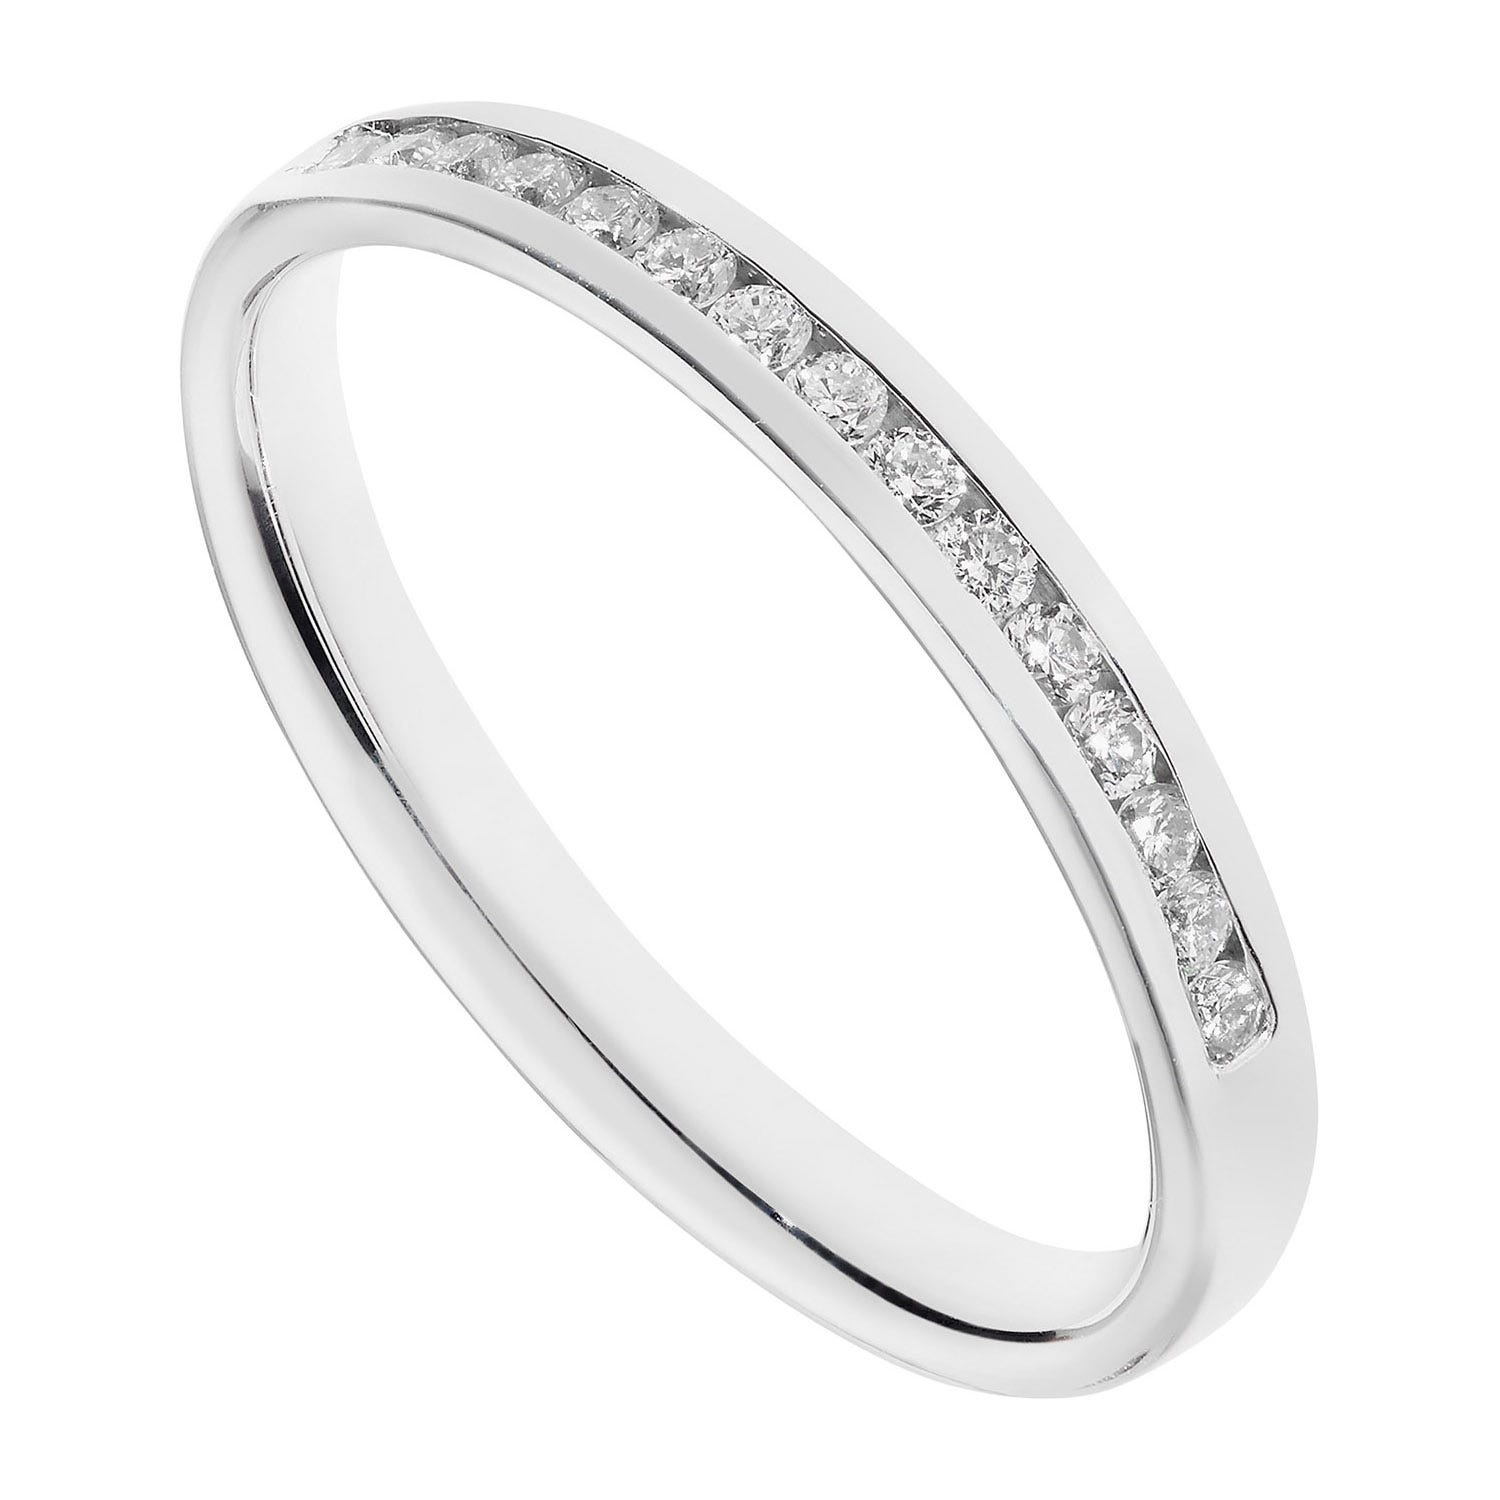 9ct white gold 0.15 carat round brilliant diamond ring